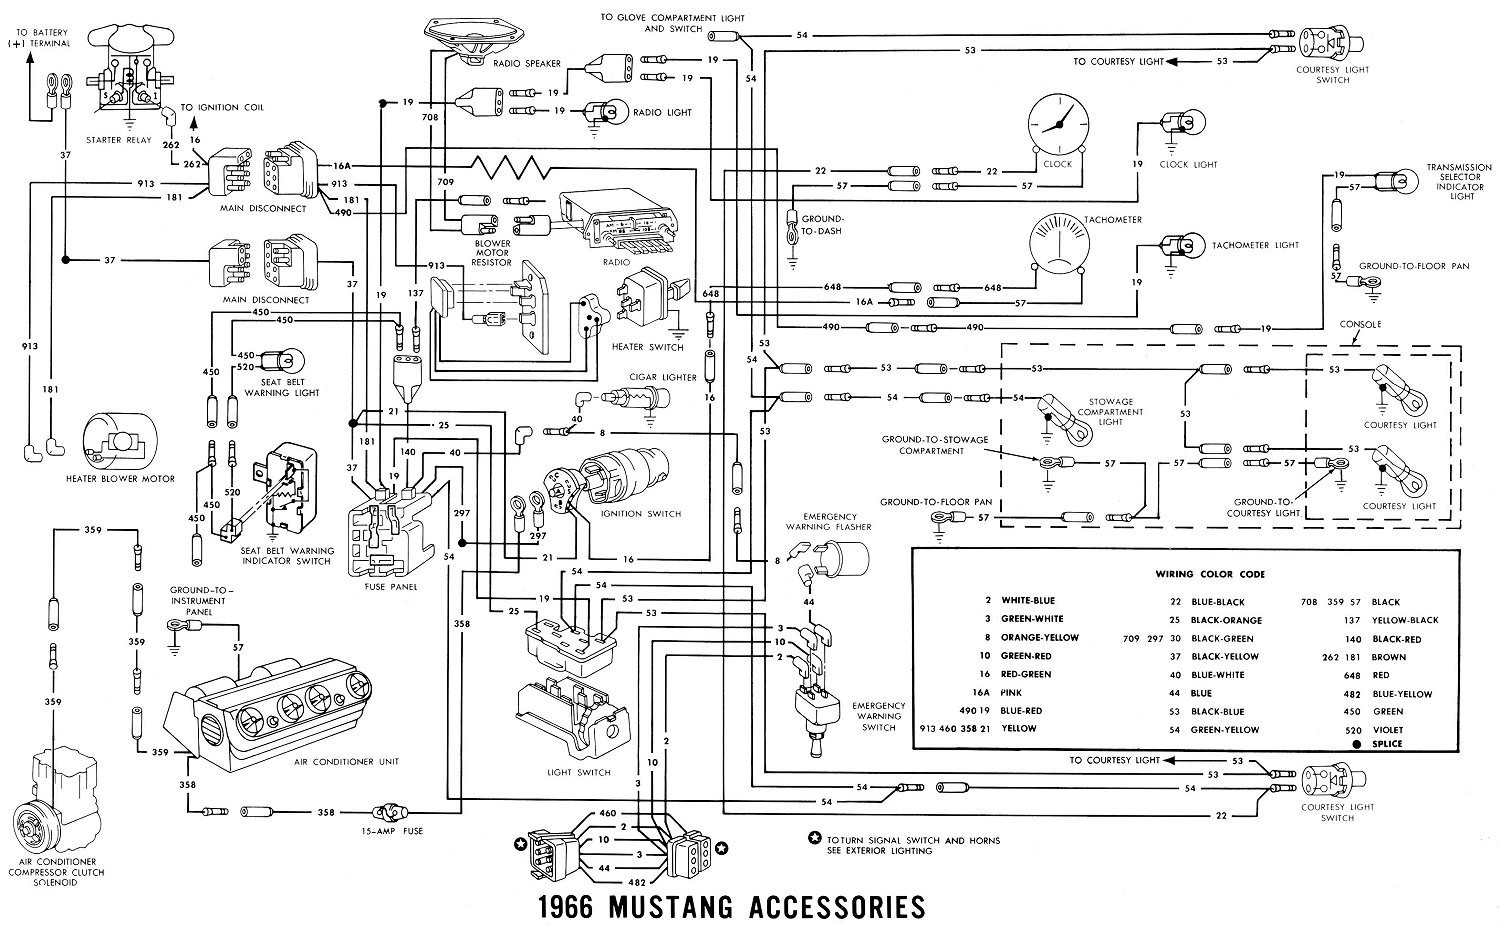 1967 mustang wiring diagram pdf wire center u2022 rh grooveguard co 1967 mustang wiring diagram